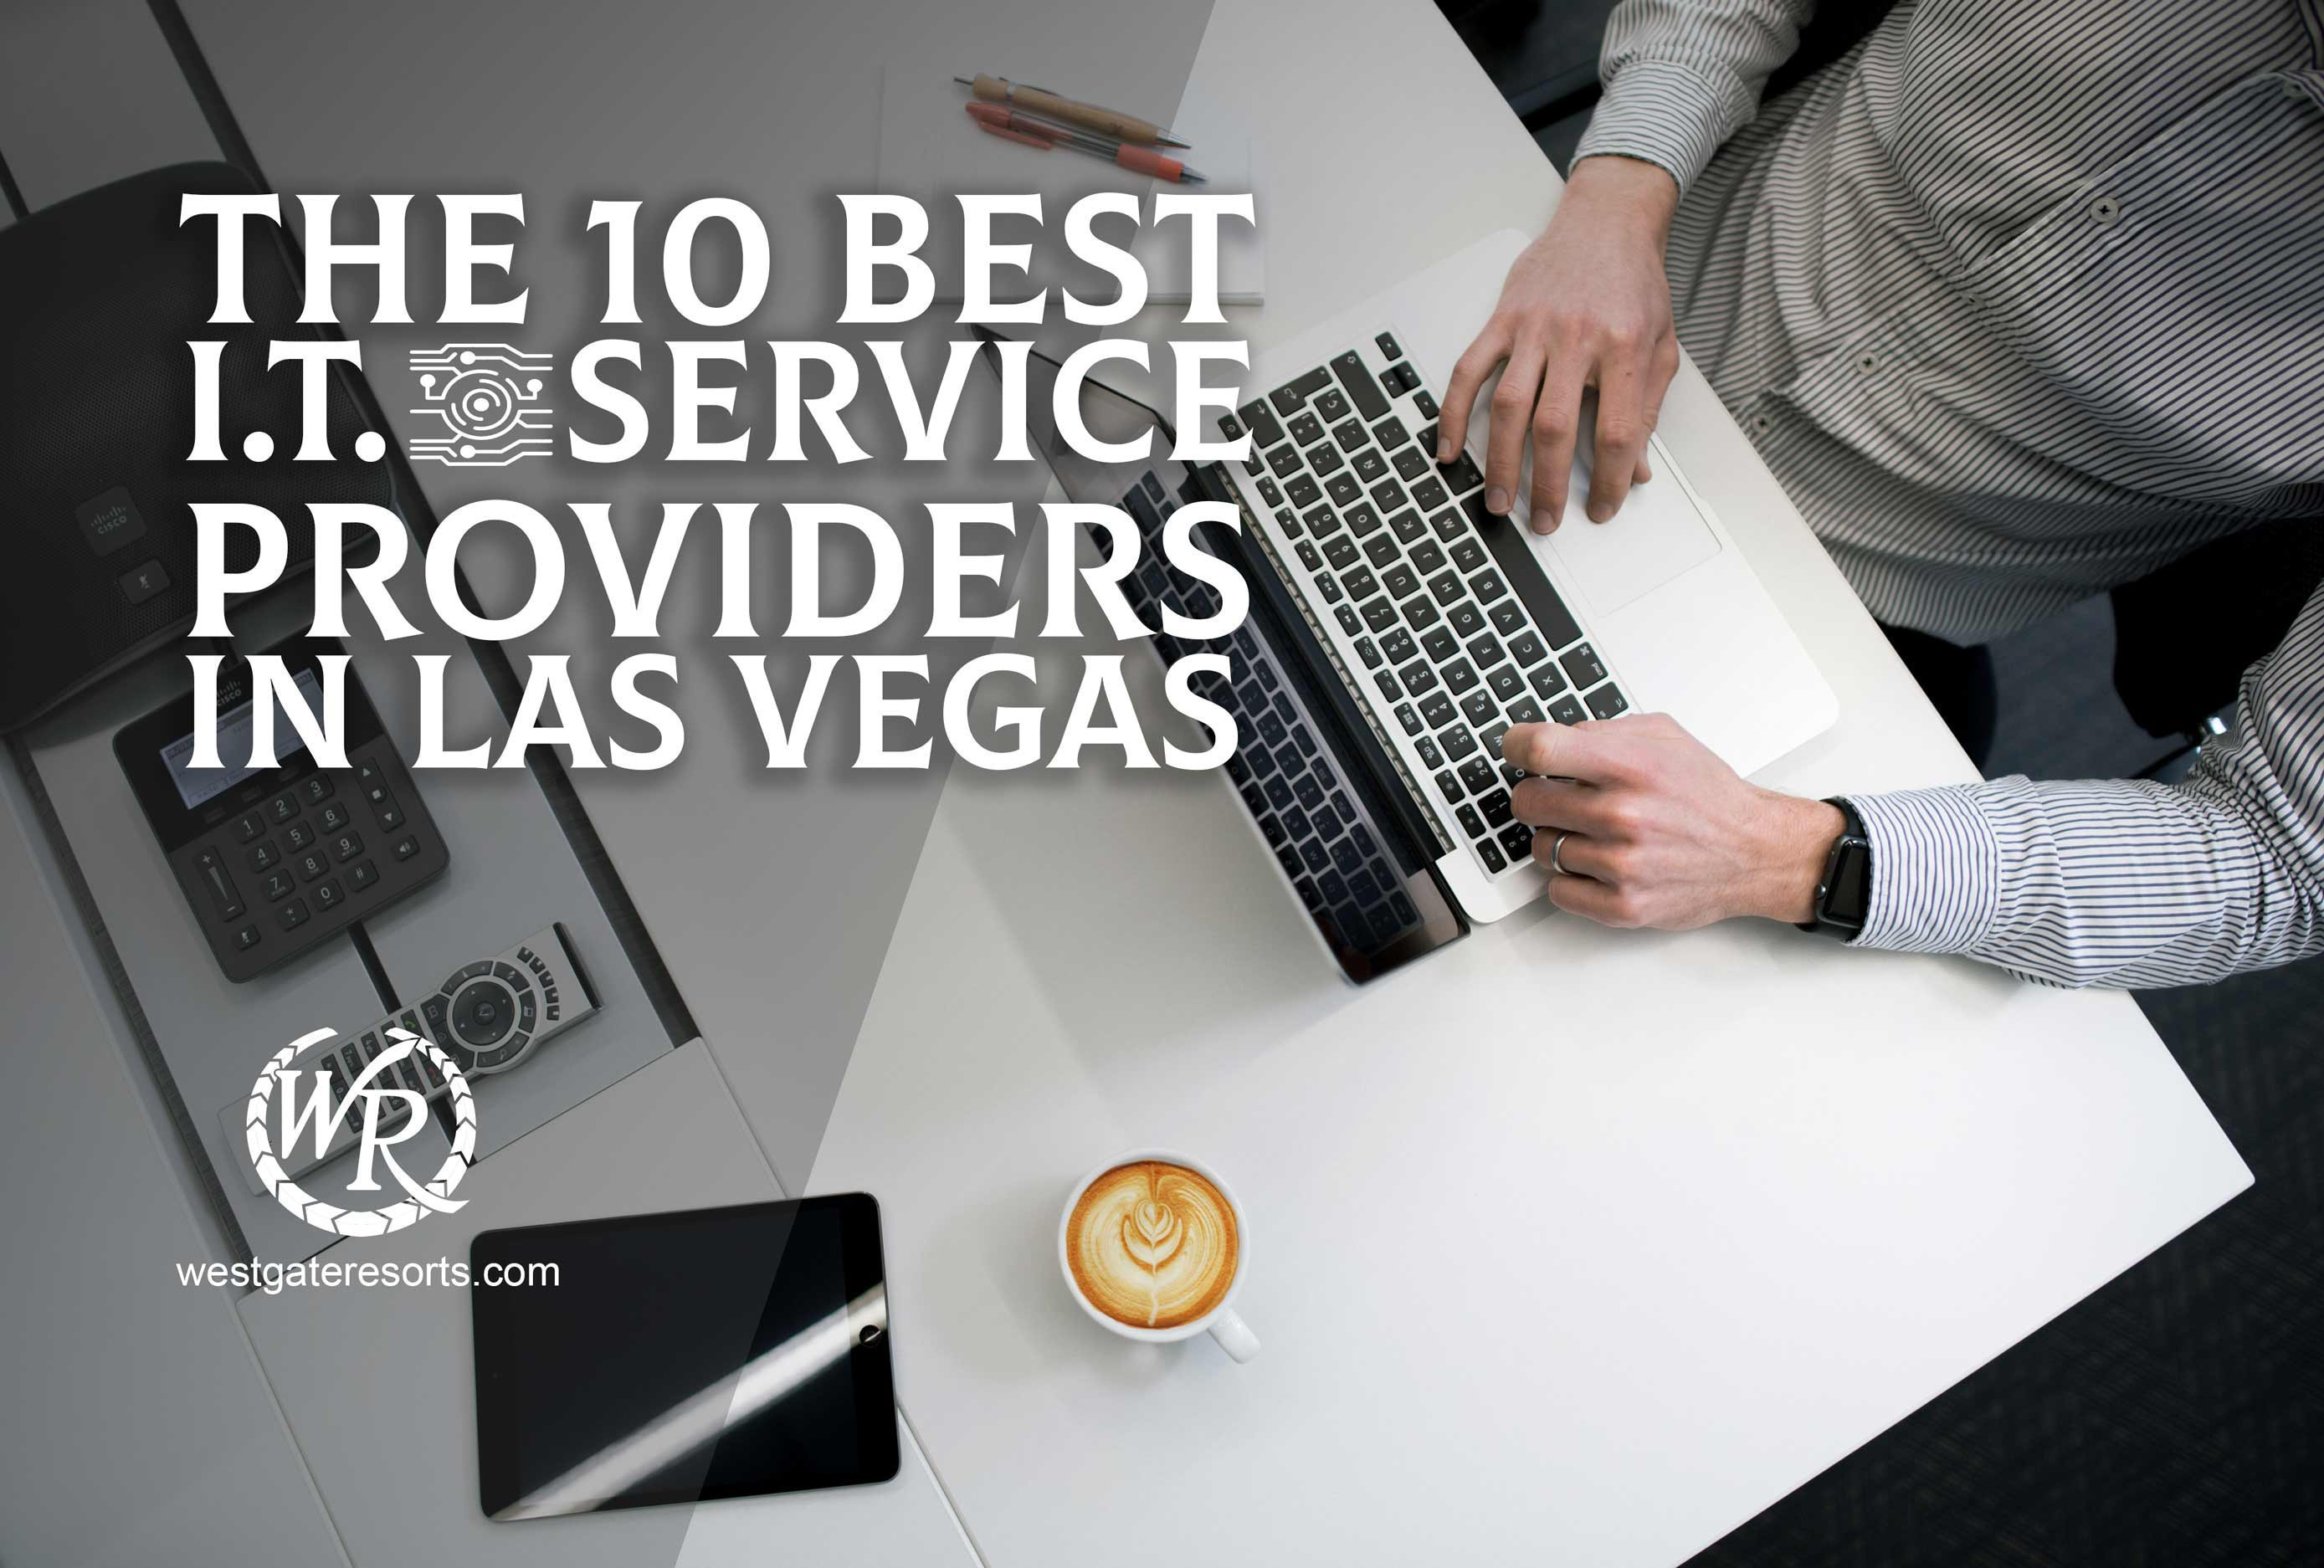 The 10 Best I.T. Service Providers in Las Vegas